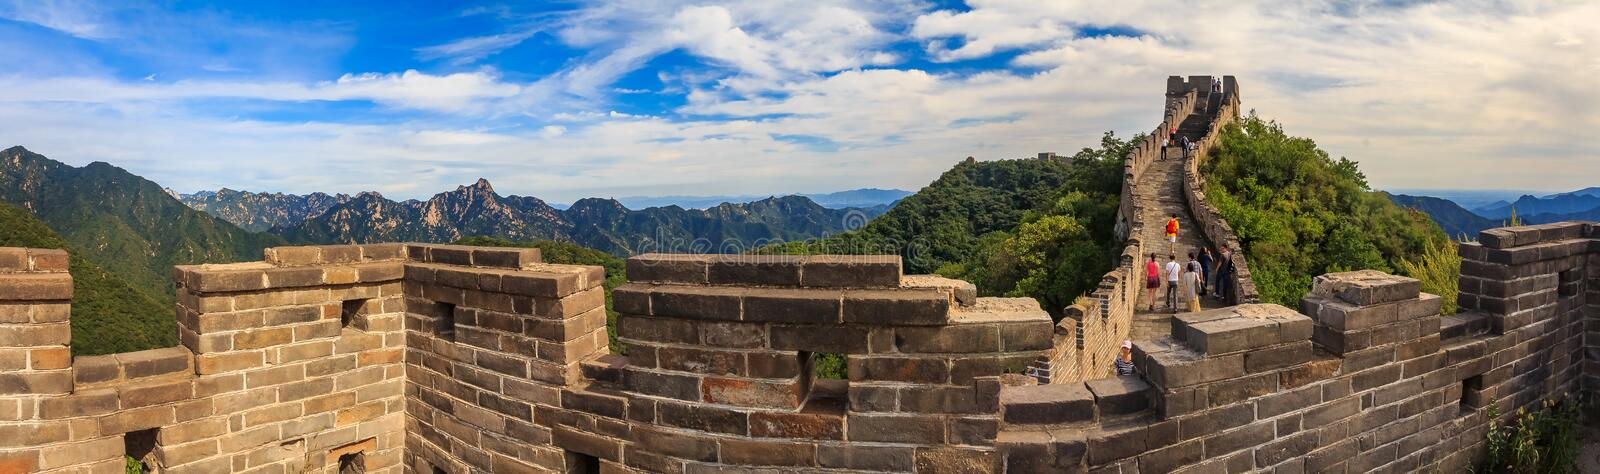 MutianyuPanoramic view of the Great Wall of China and tourists walking on the wall in the Mutianyu royalty free stock photography